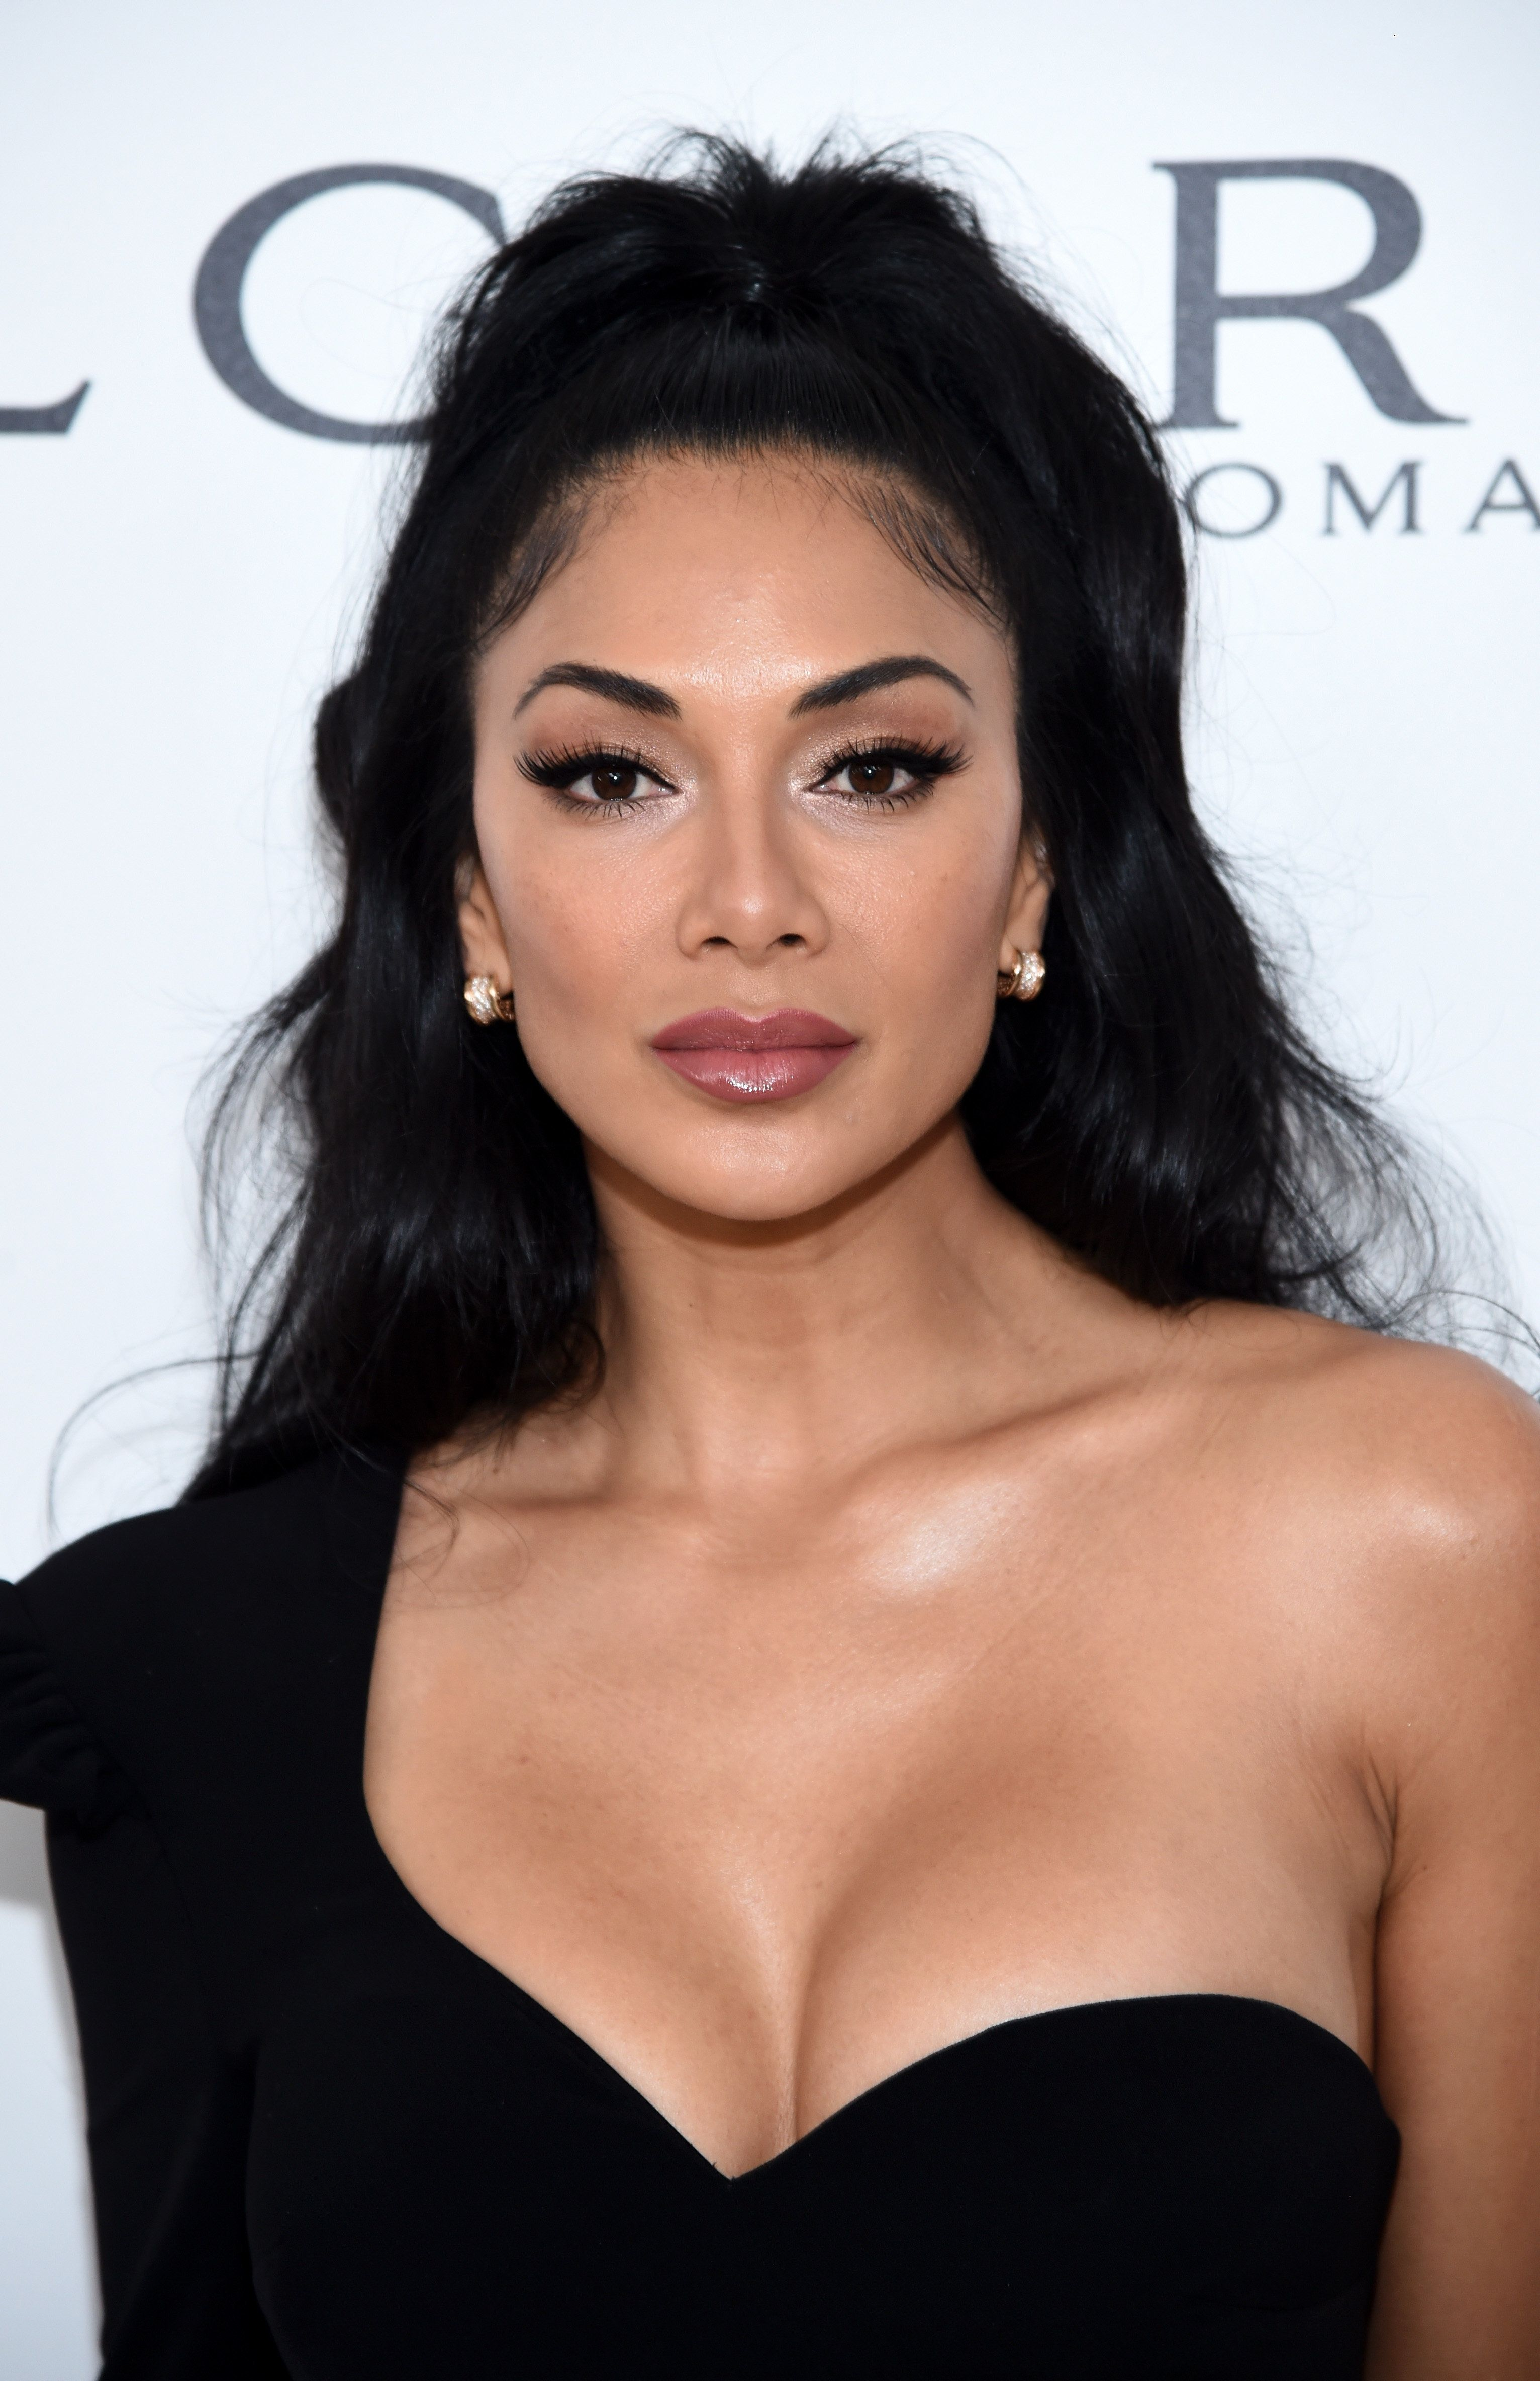 Animal Charity PETA Slams Nicole Scherzinger Over Visit To Dubai Petting